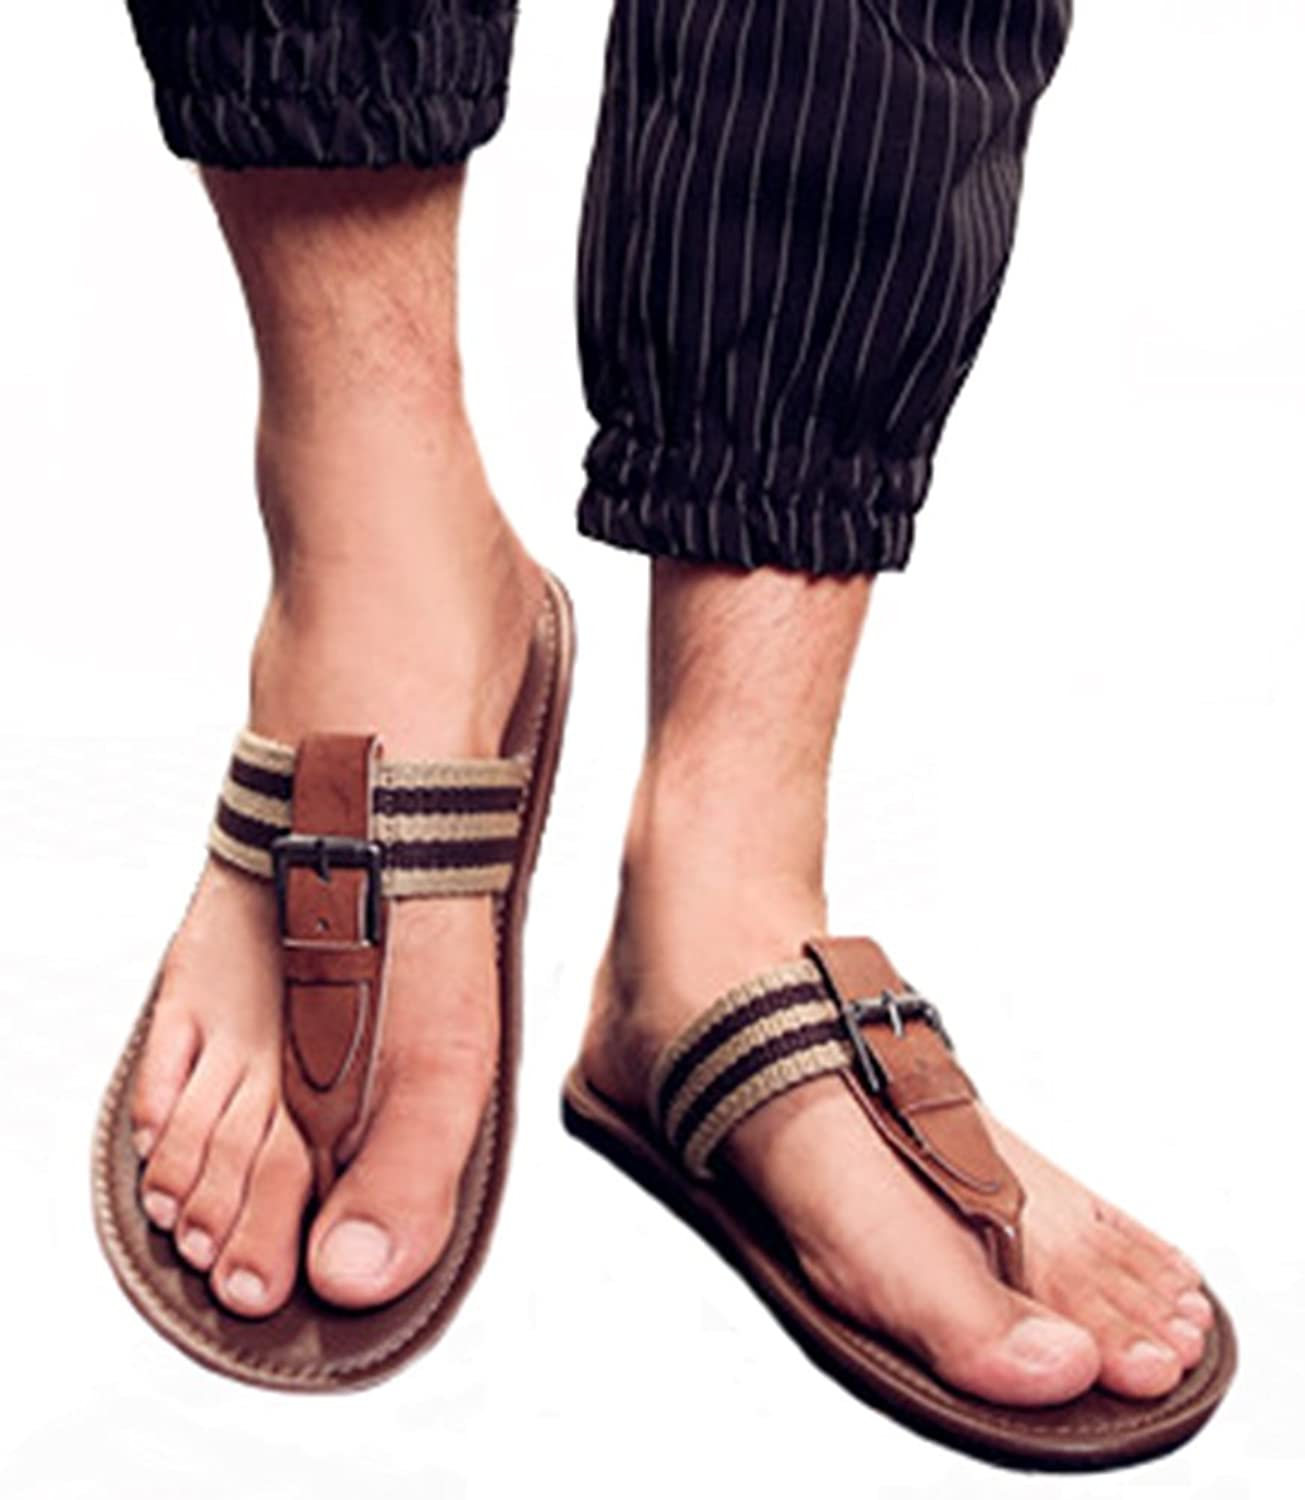 f4eca5fabf55 best IDIFU Men s Casual Open Toe Buckle Striped Flat Flip Flops Beach Seas  Pool Thong Sandals. AllhqFashion Women s Solid PU Kitten-Heels ...